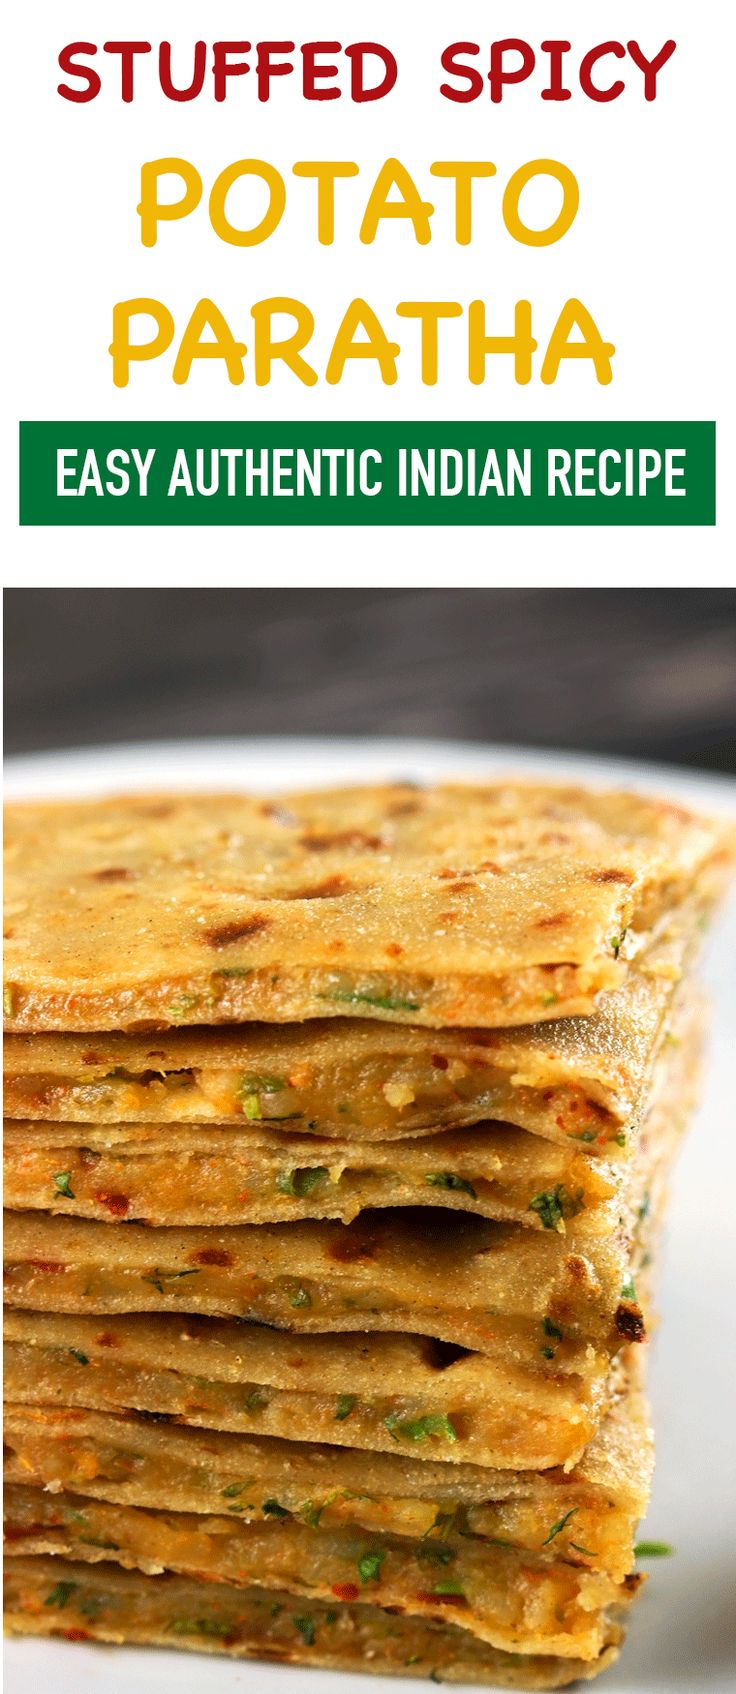 265 best Love naan images on Pinterest | Indian recipes ...